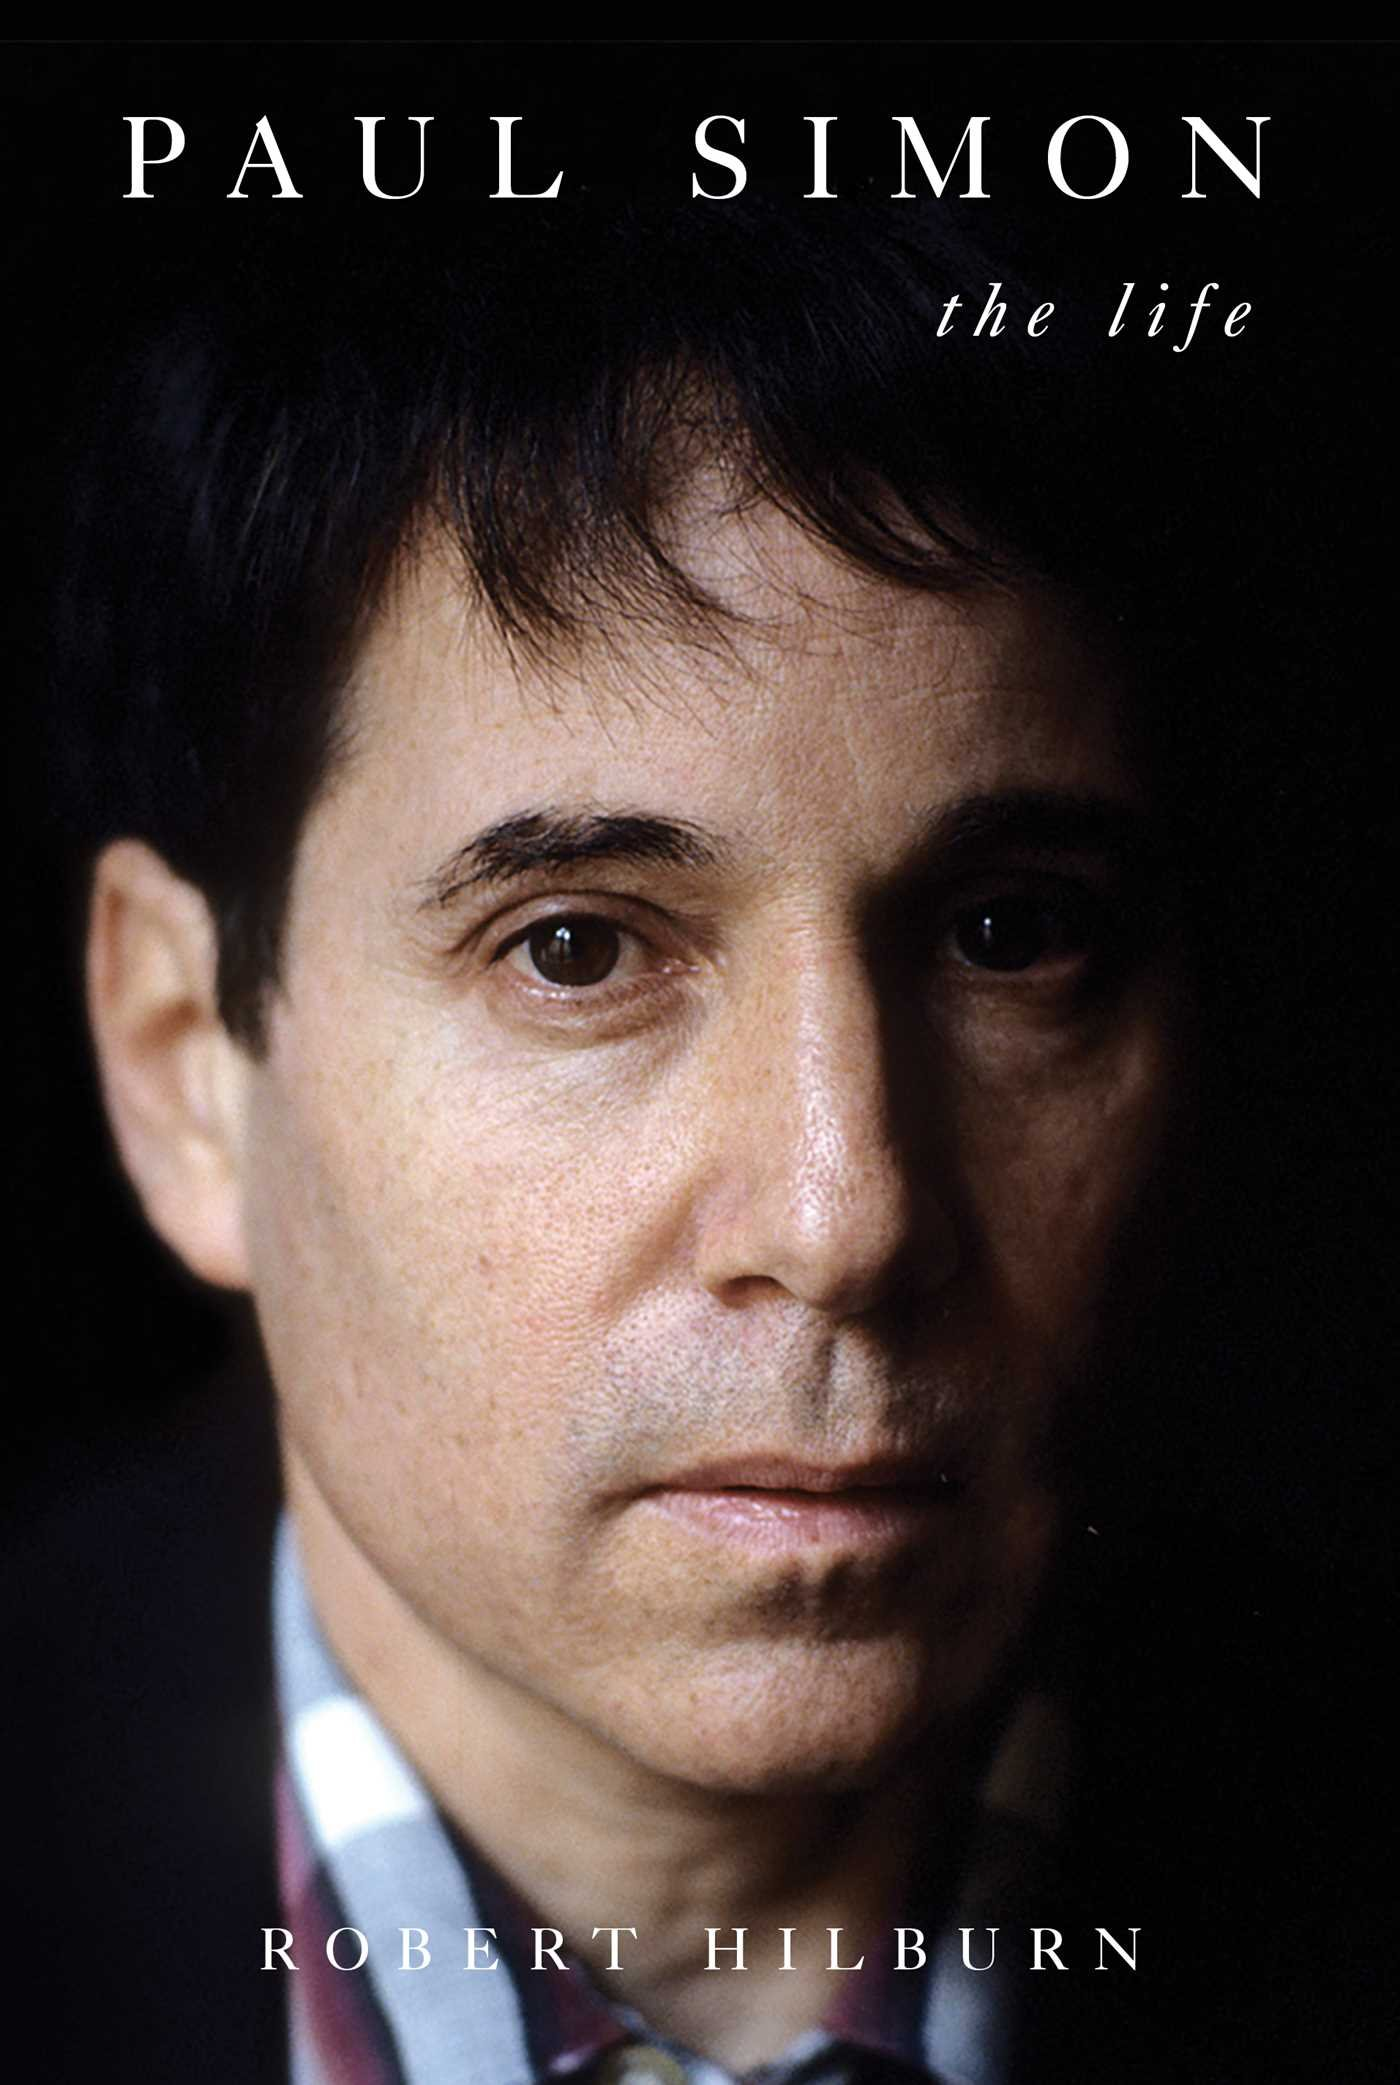 Promotional image for Martin Bandyke Under Covers for September 2018: Martin Bandyke interviews Robert Hilburn, author of Paul Simon: The Life. podcast